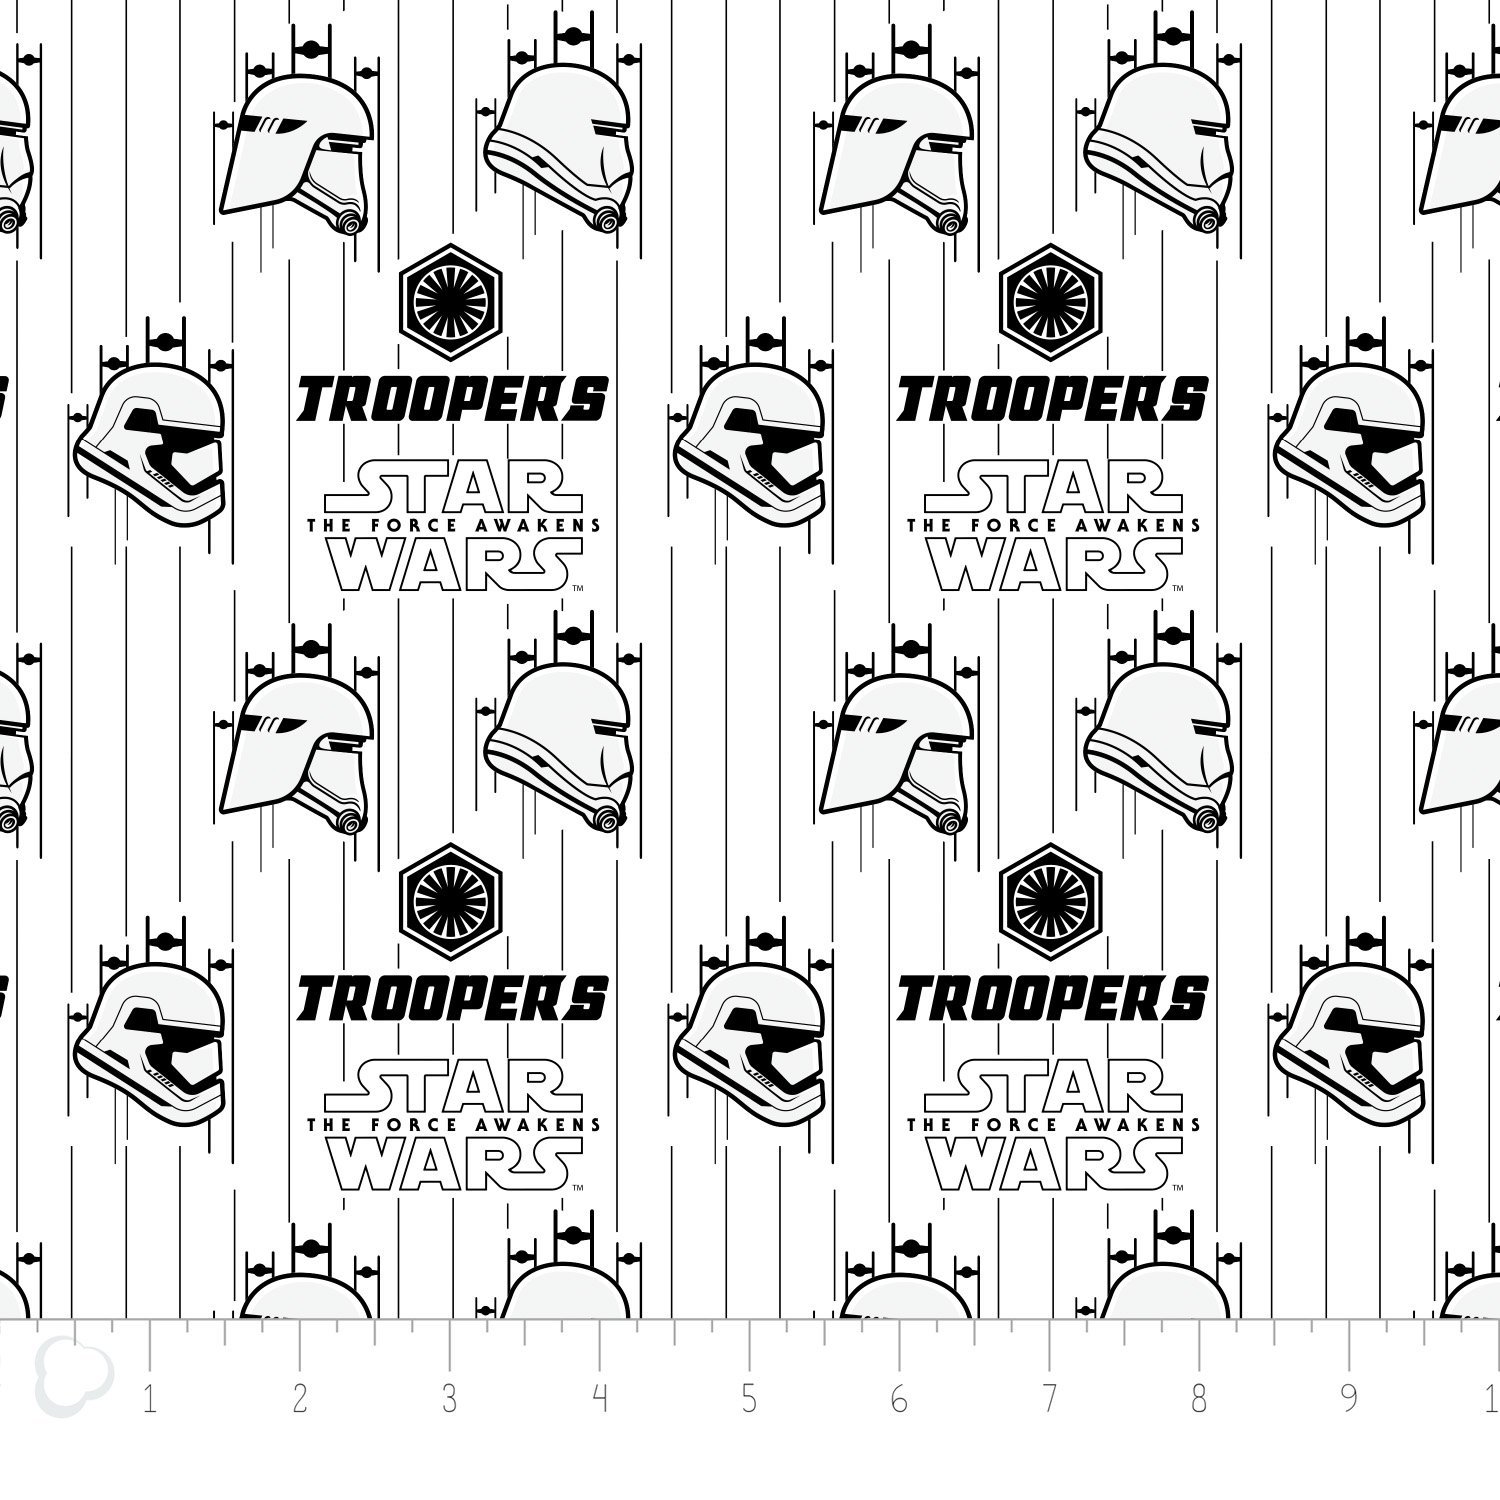 The Force Awakens - Stormtroopers - White